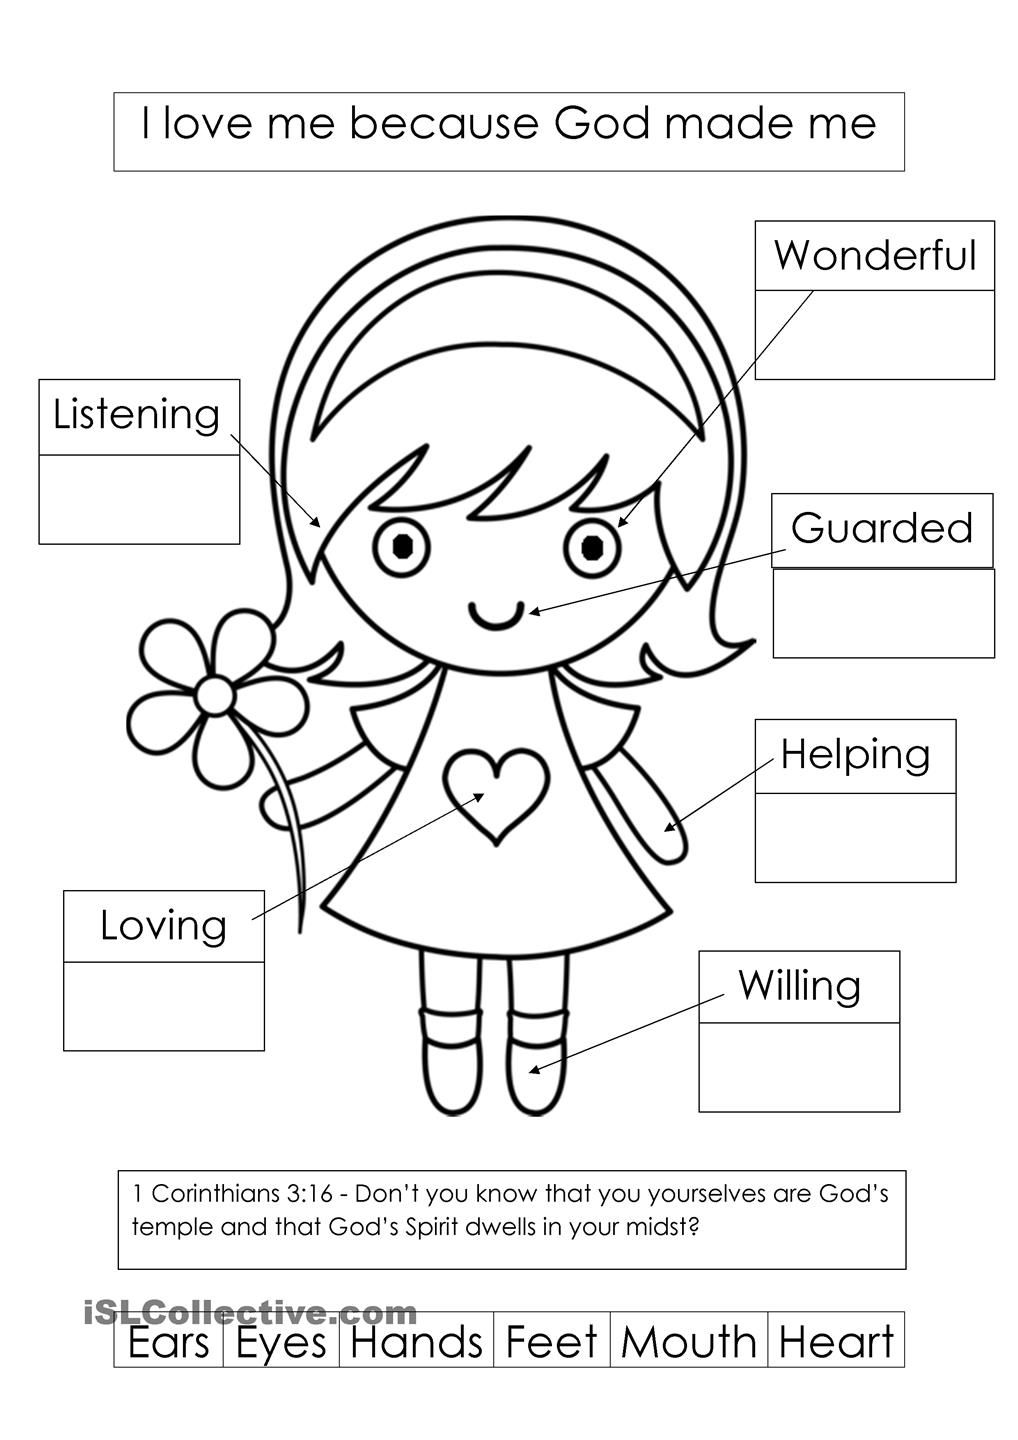 Worksheets Bible Worksheets For Preschoolers god made me i am fearfully and wonderfully preschool learning about your body at level listening speaking worksheets beginner kindergarten me